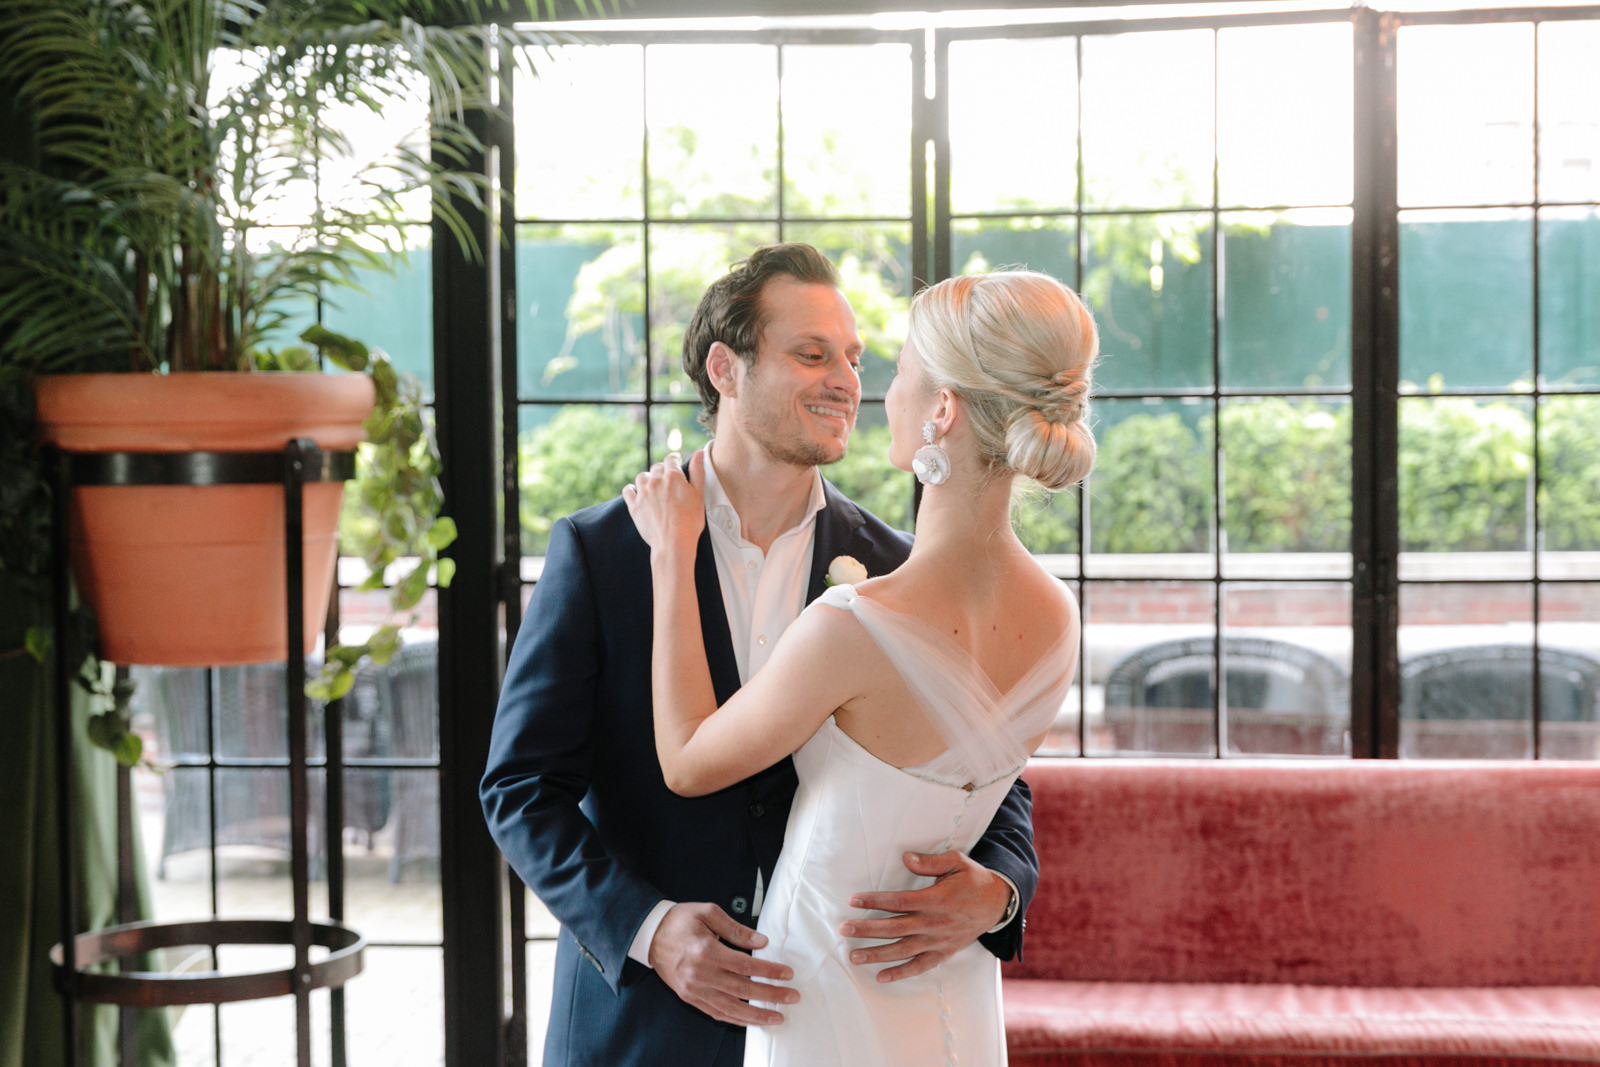 Intimate-NYC_wedding_ by Tanya Isaeva-67.jpg